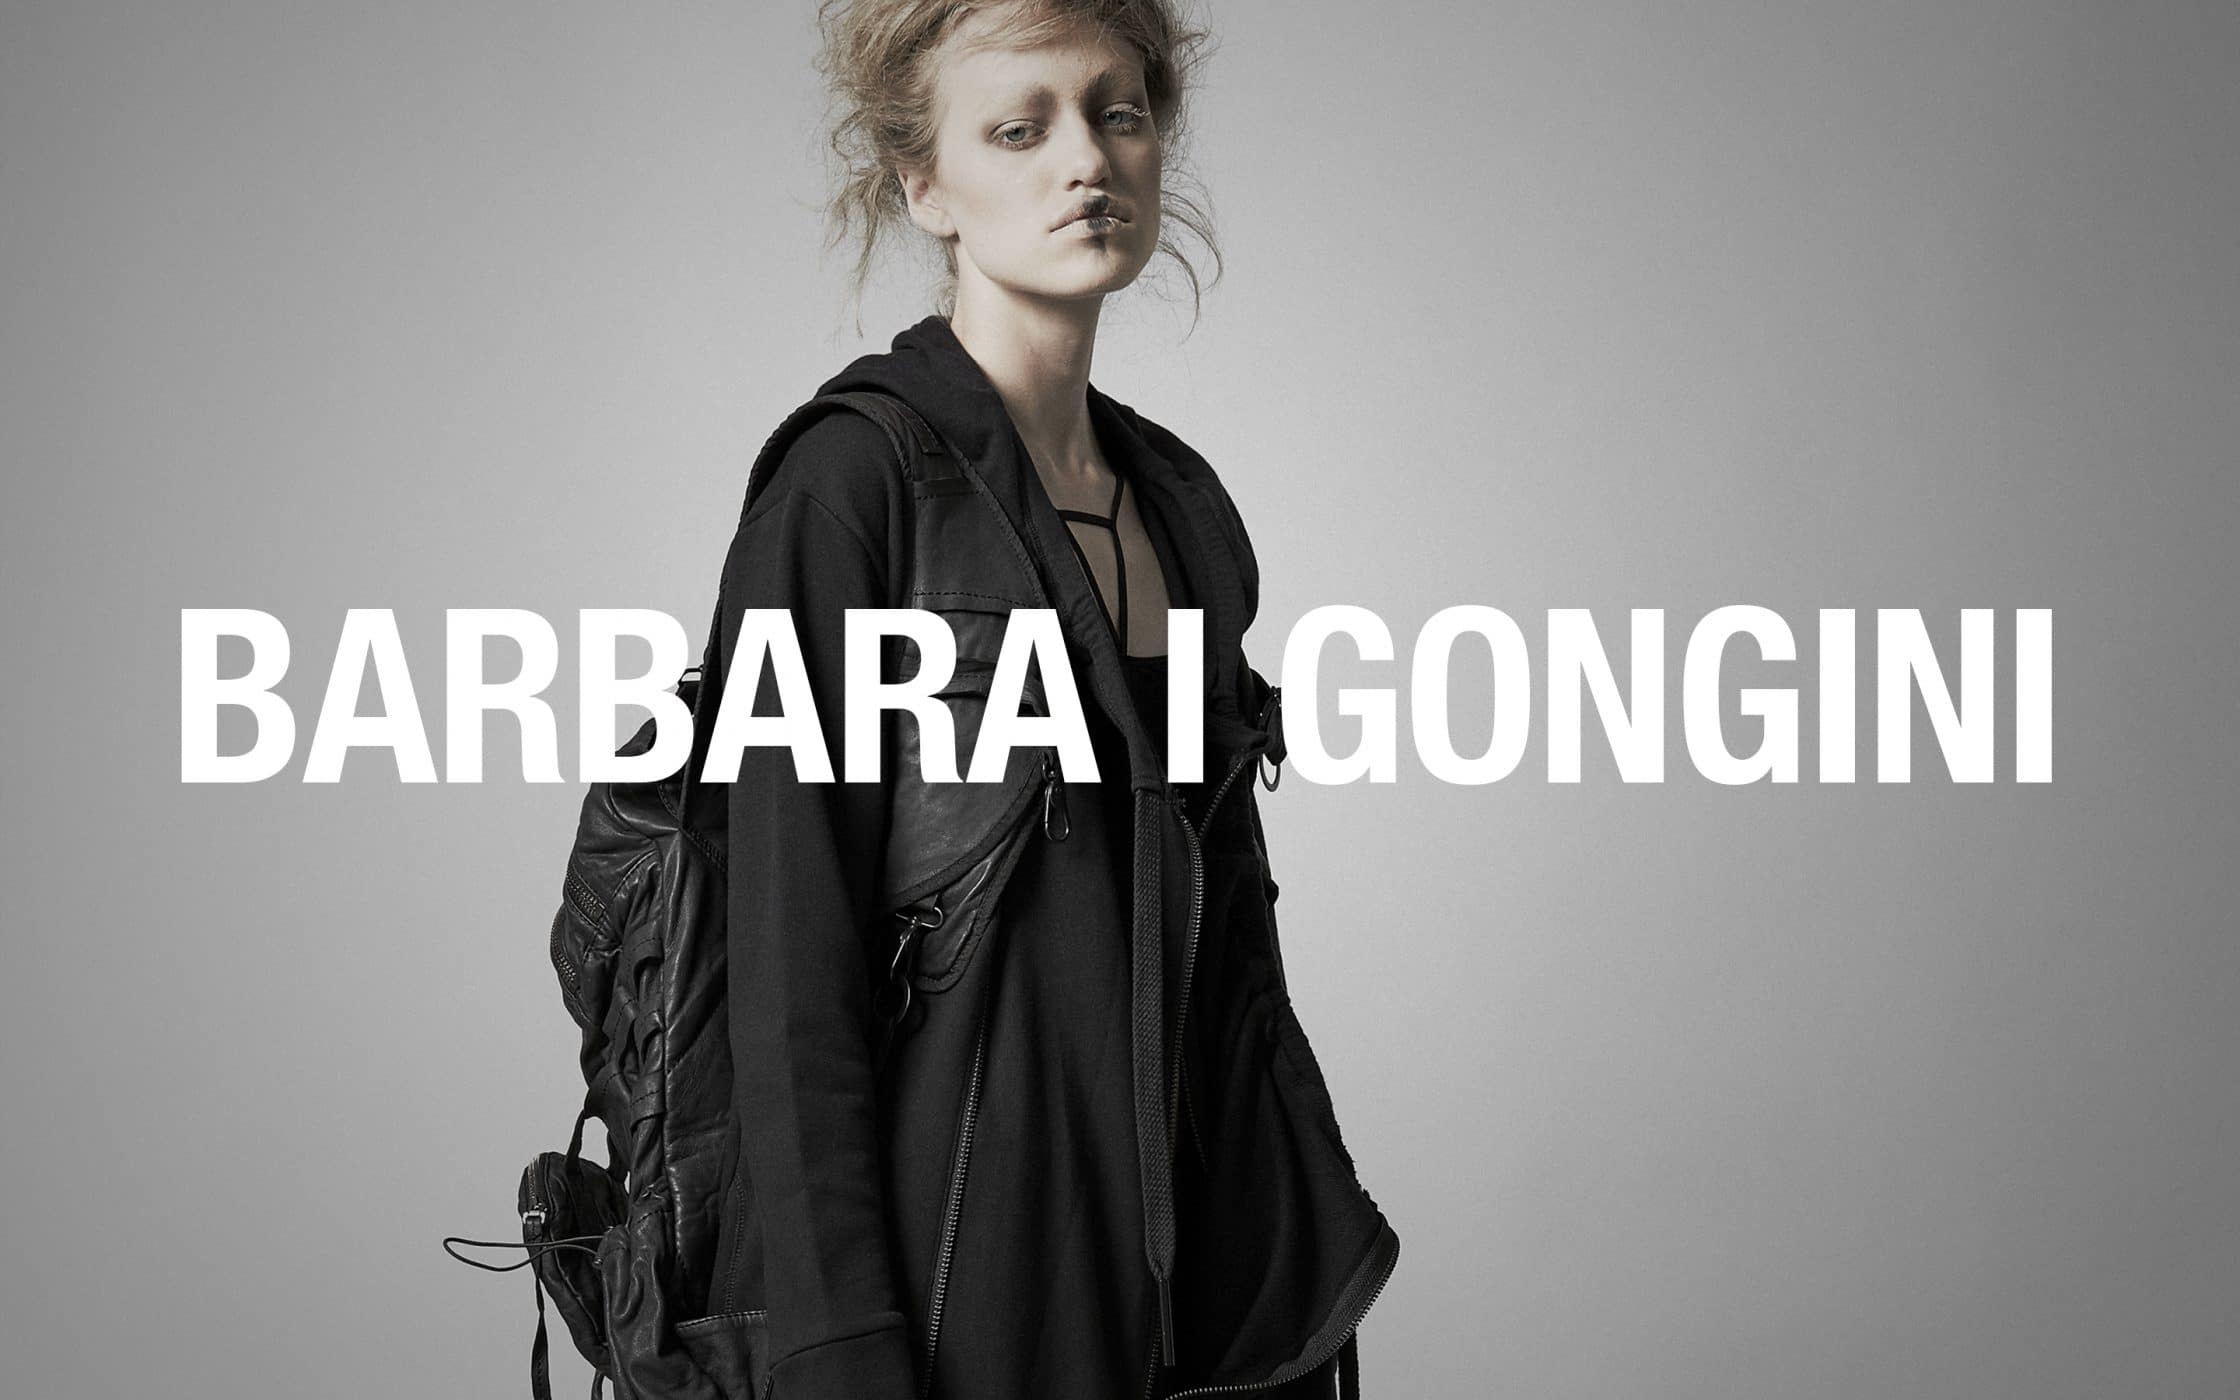 Barbara I Gongini